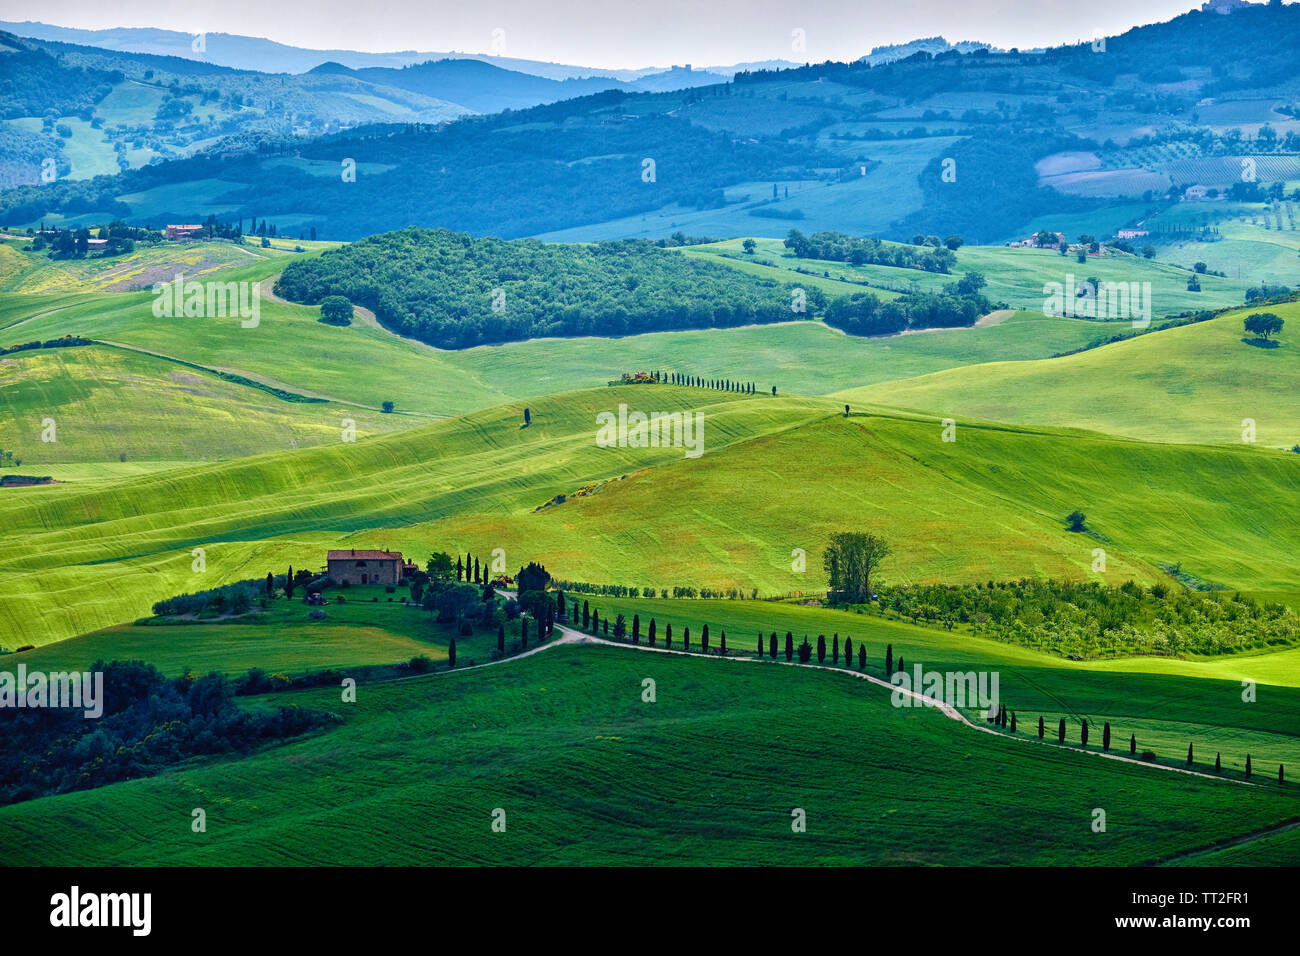 Rolling Hills with Farms, Val d'Orcia, Tuscany, Italy Stock Photo